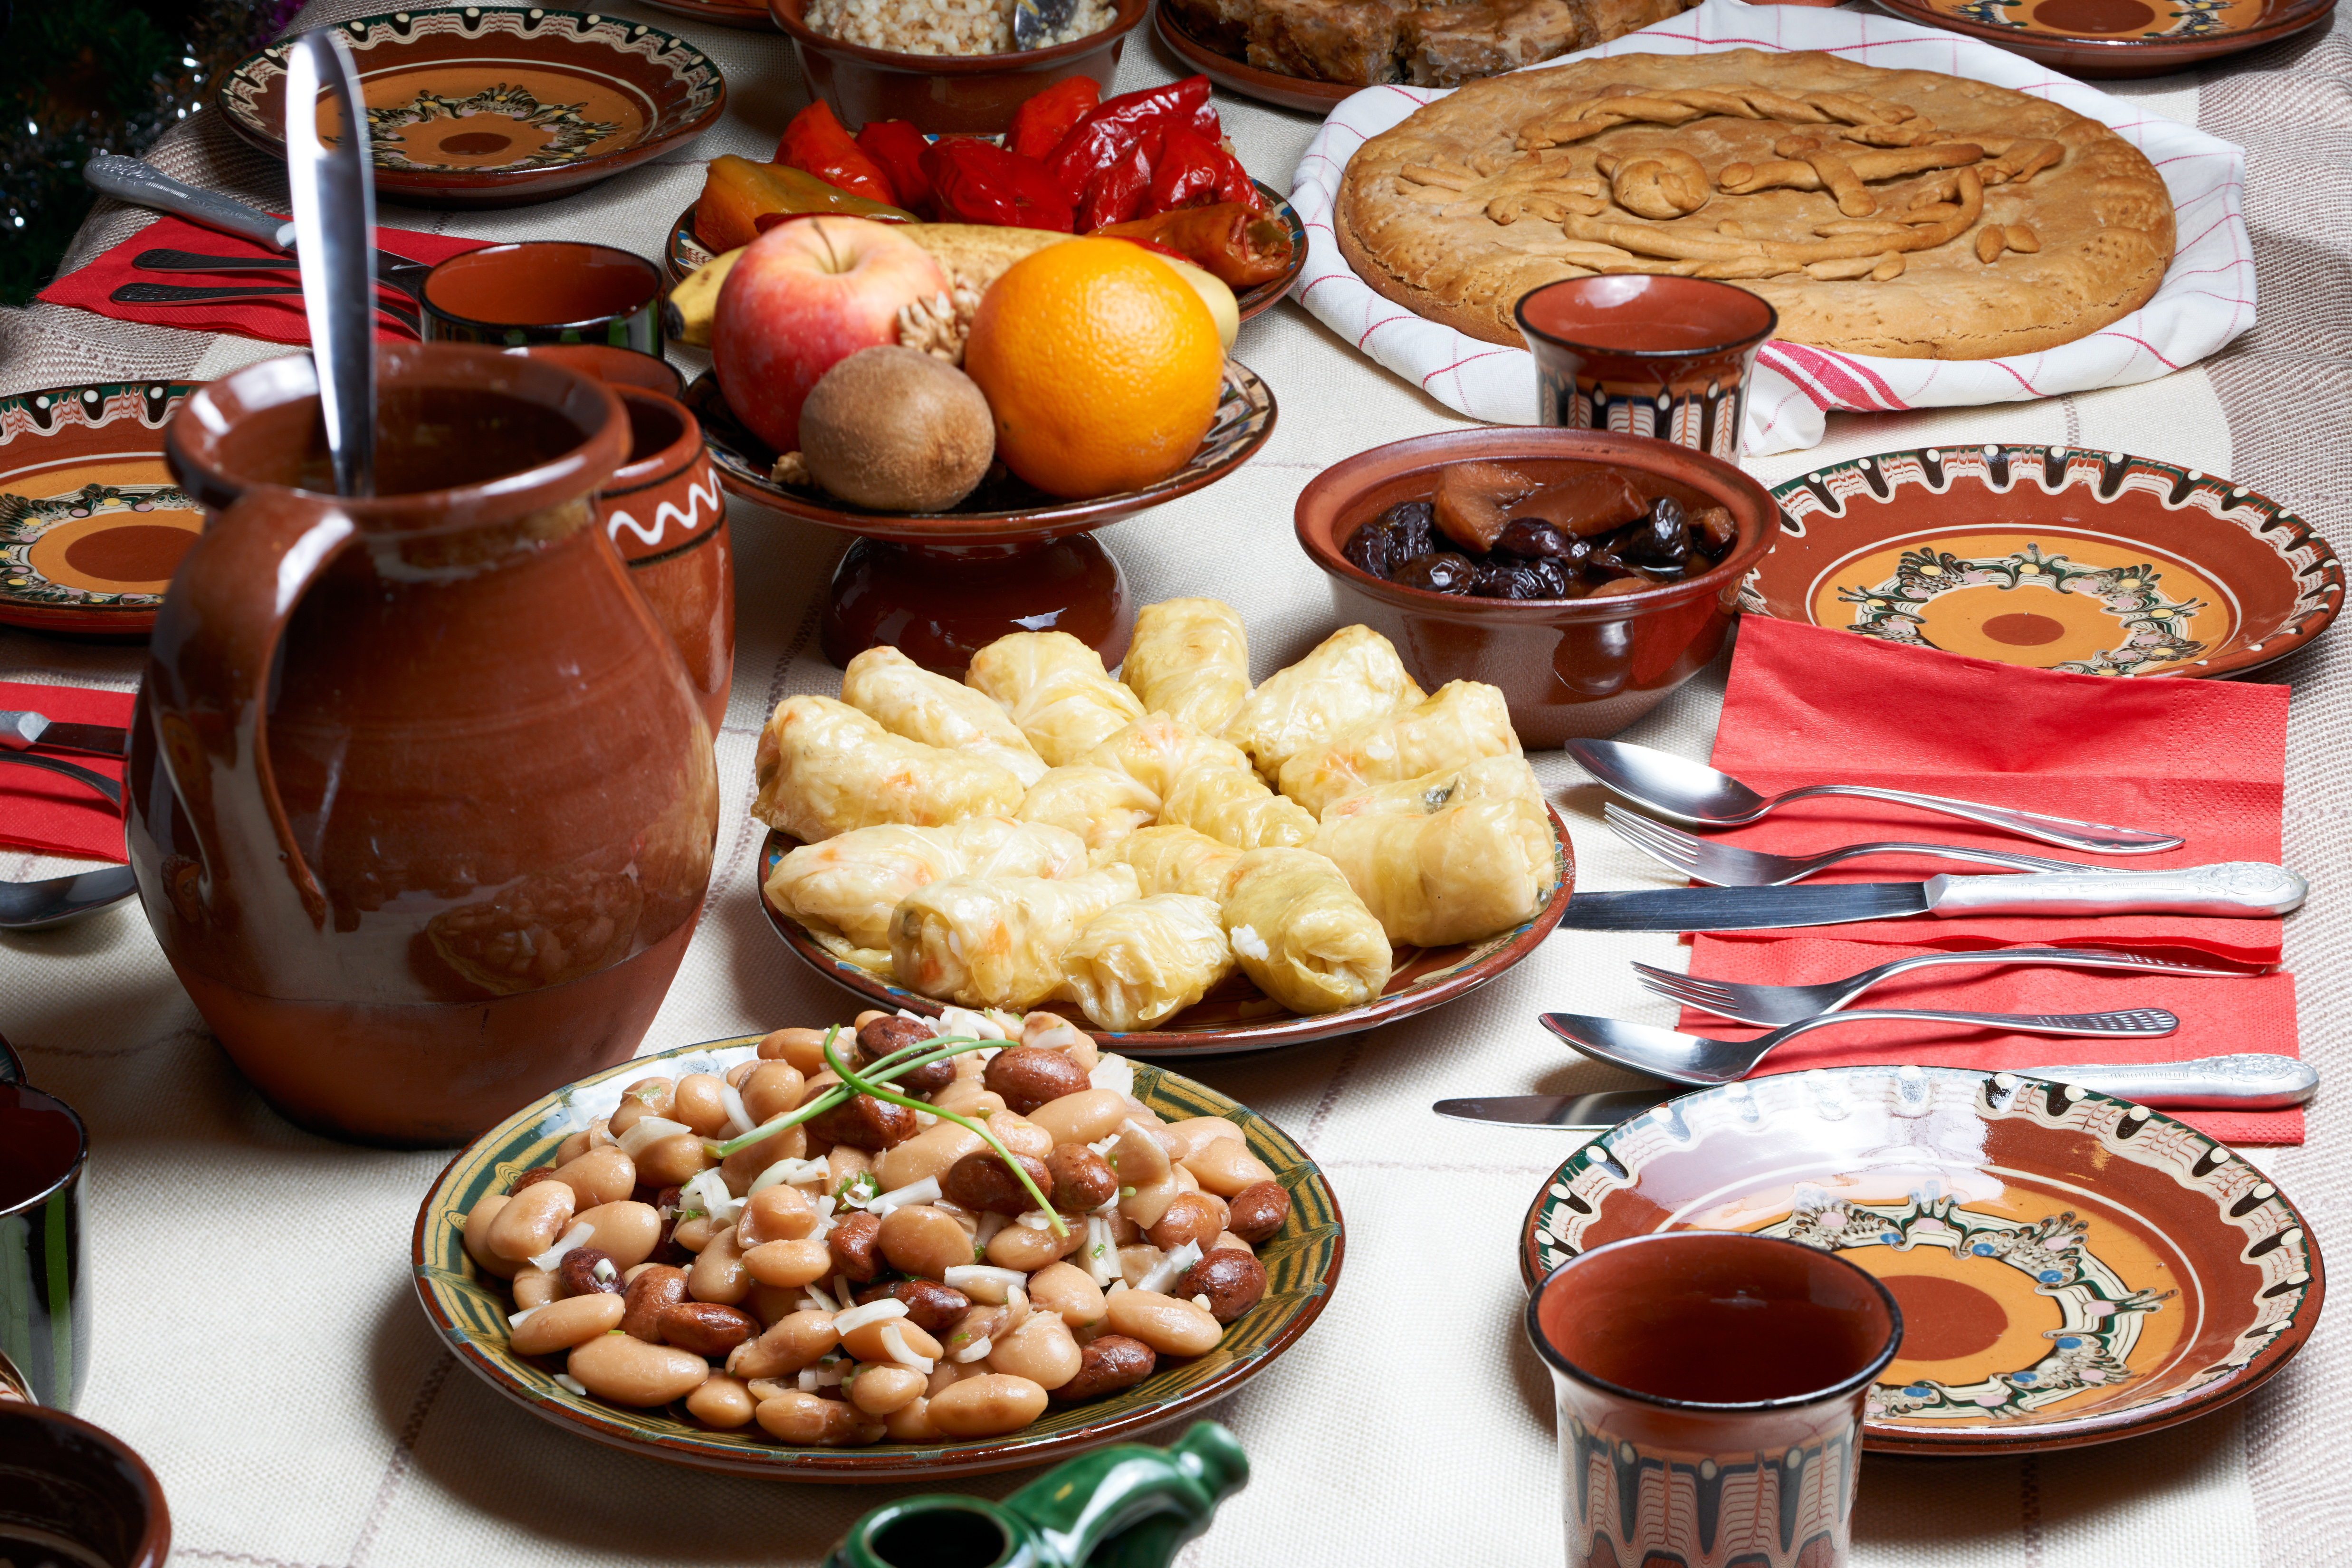 A gastronomic festival in Mikulov offering ethnic cuisine and wines.